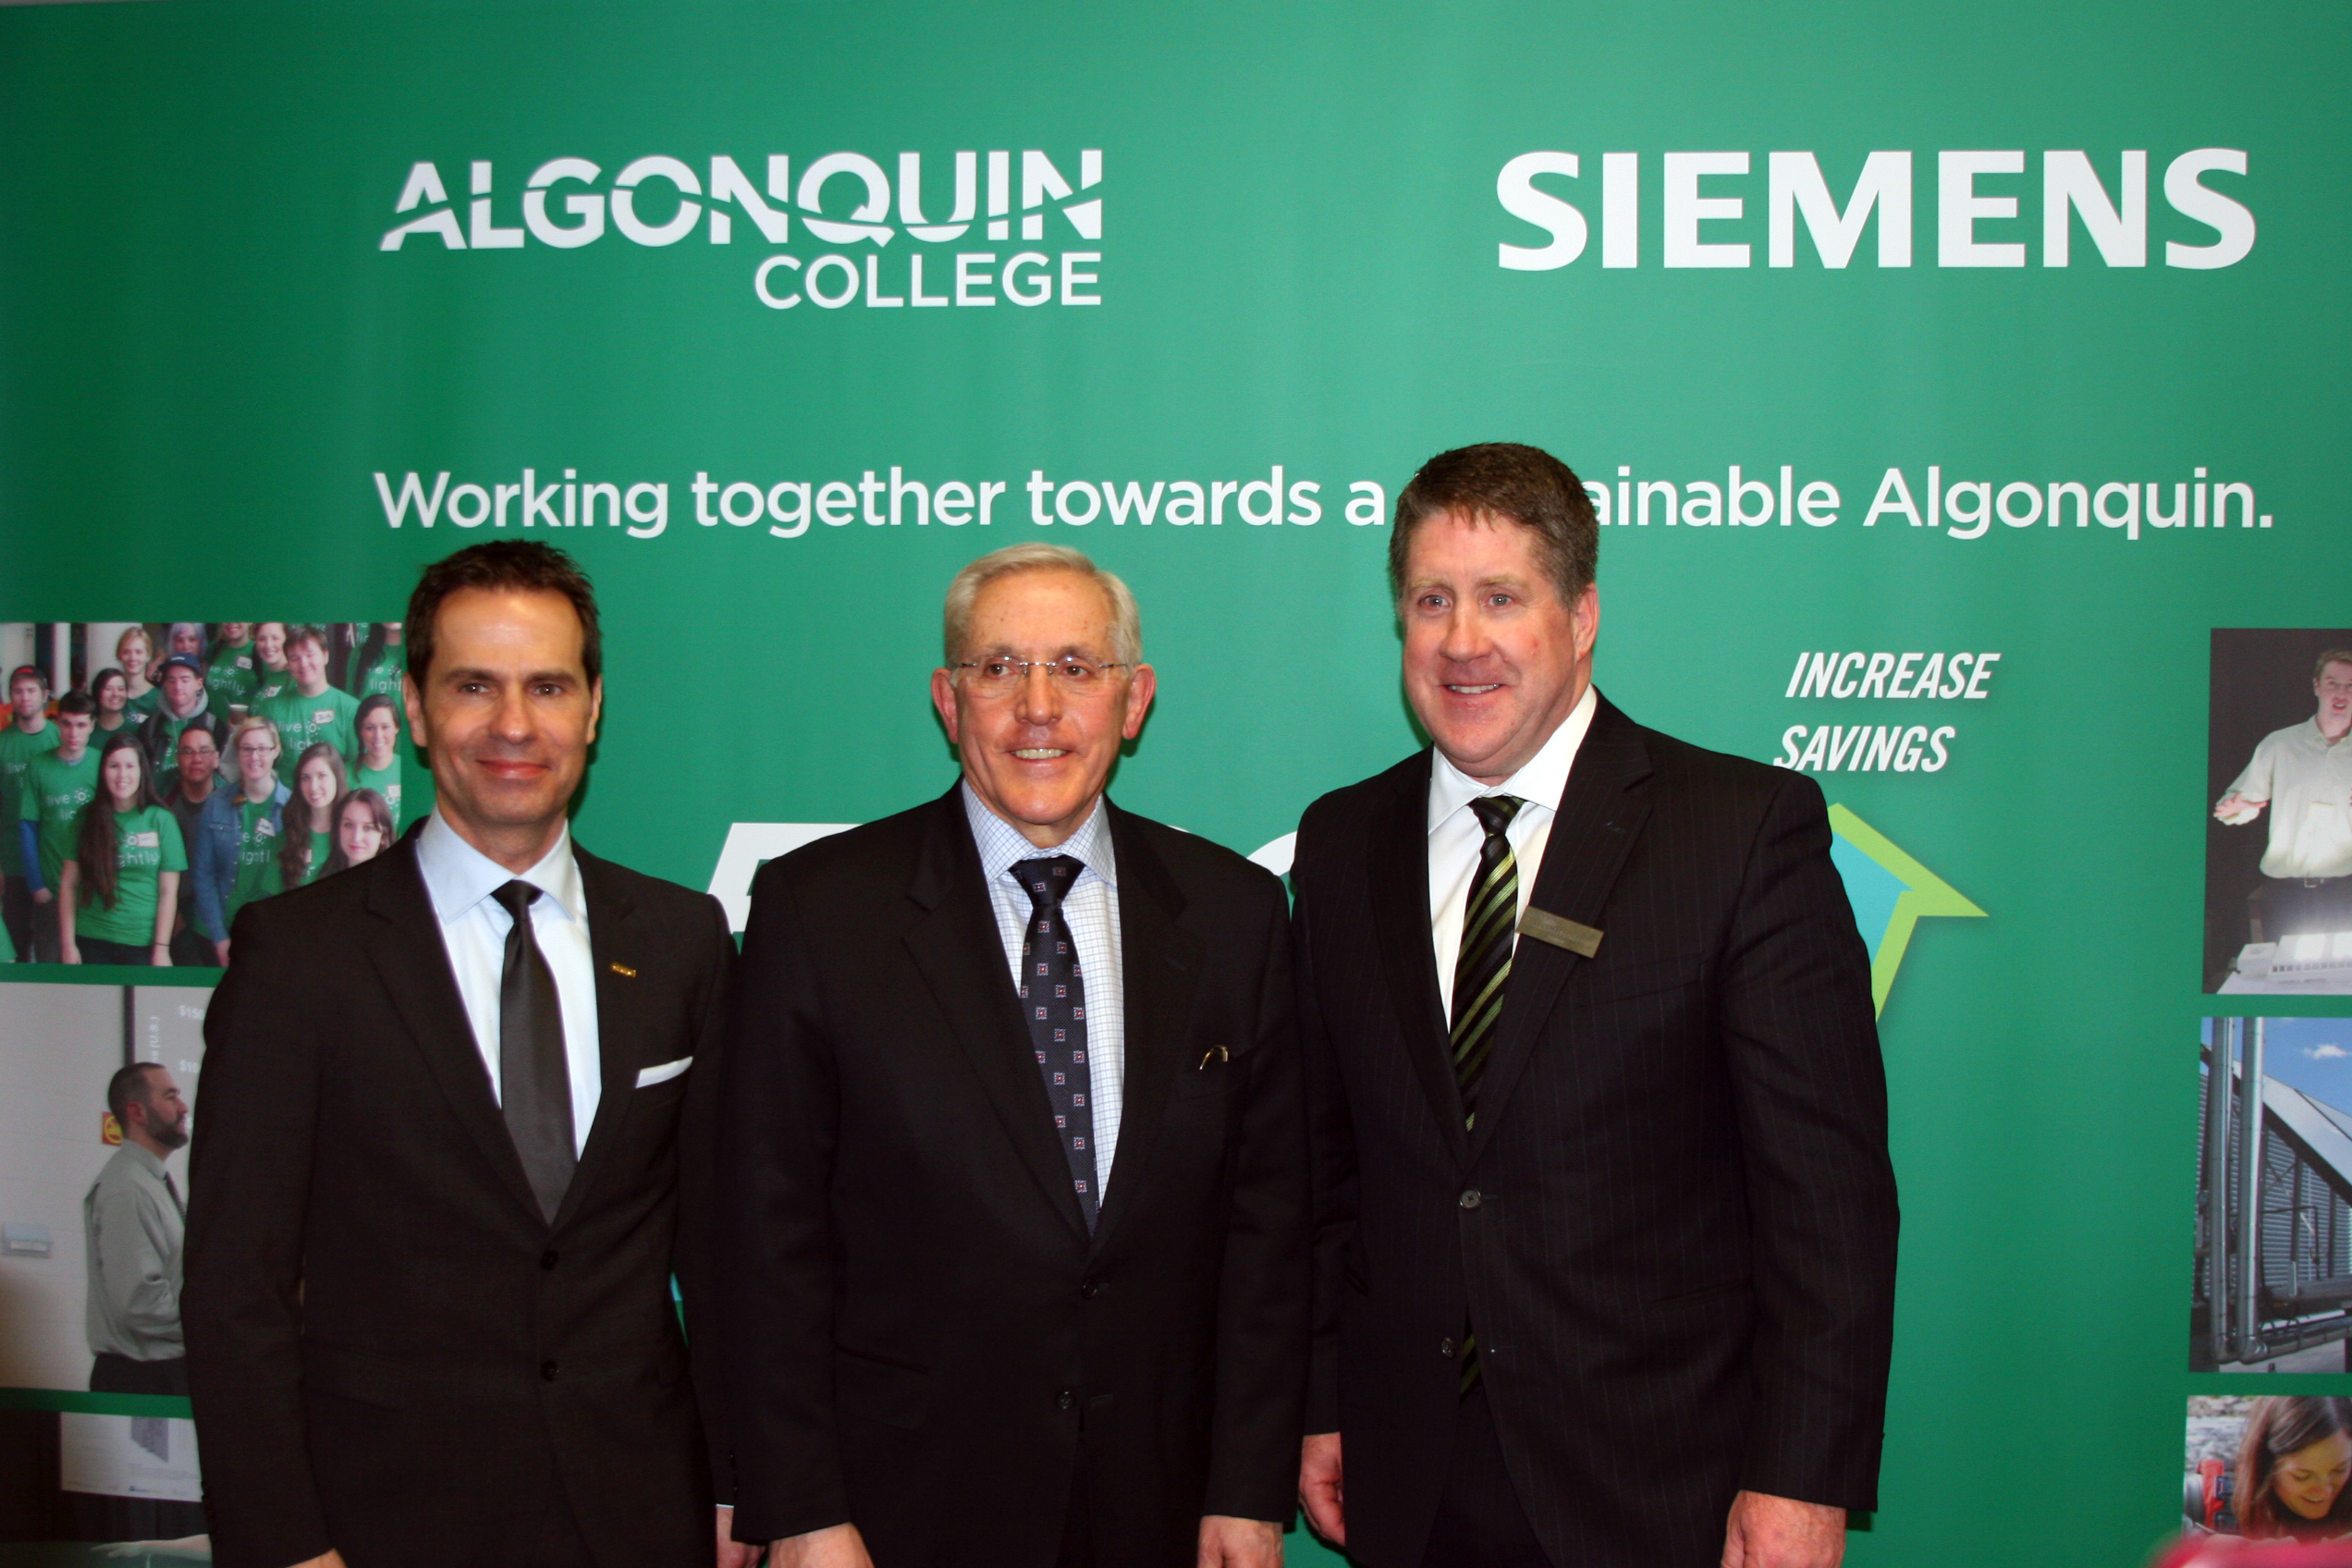 Robert Hardt, CEO, Siemens Canada;  Bob Chiarelli, Ontario Minister of Energy; and Dr. Kent MacDonald, president, Algonquin College.